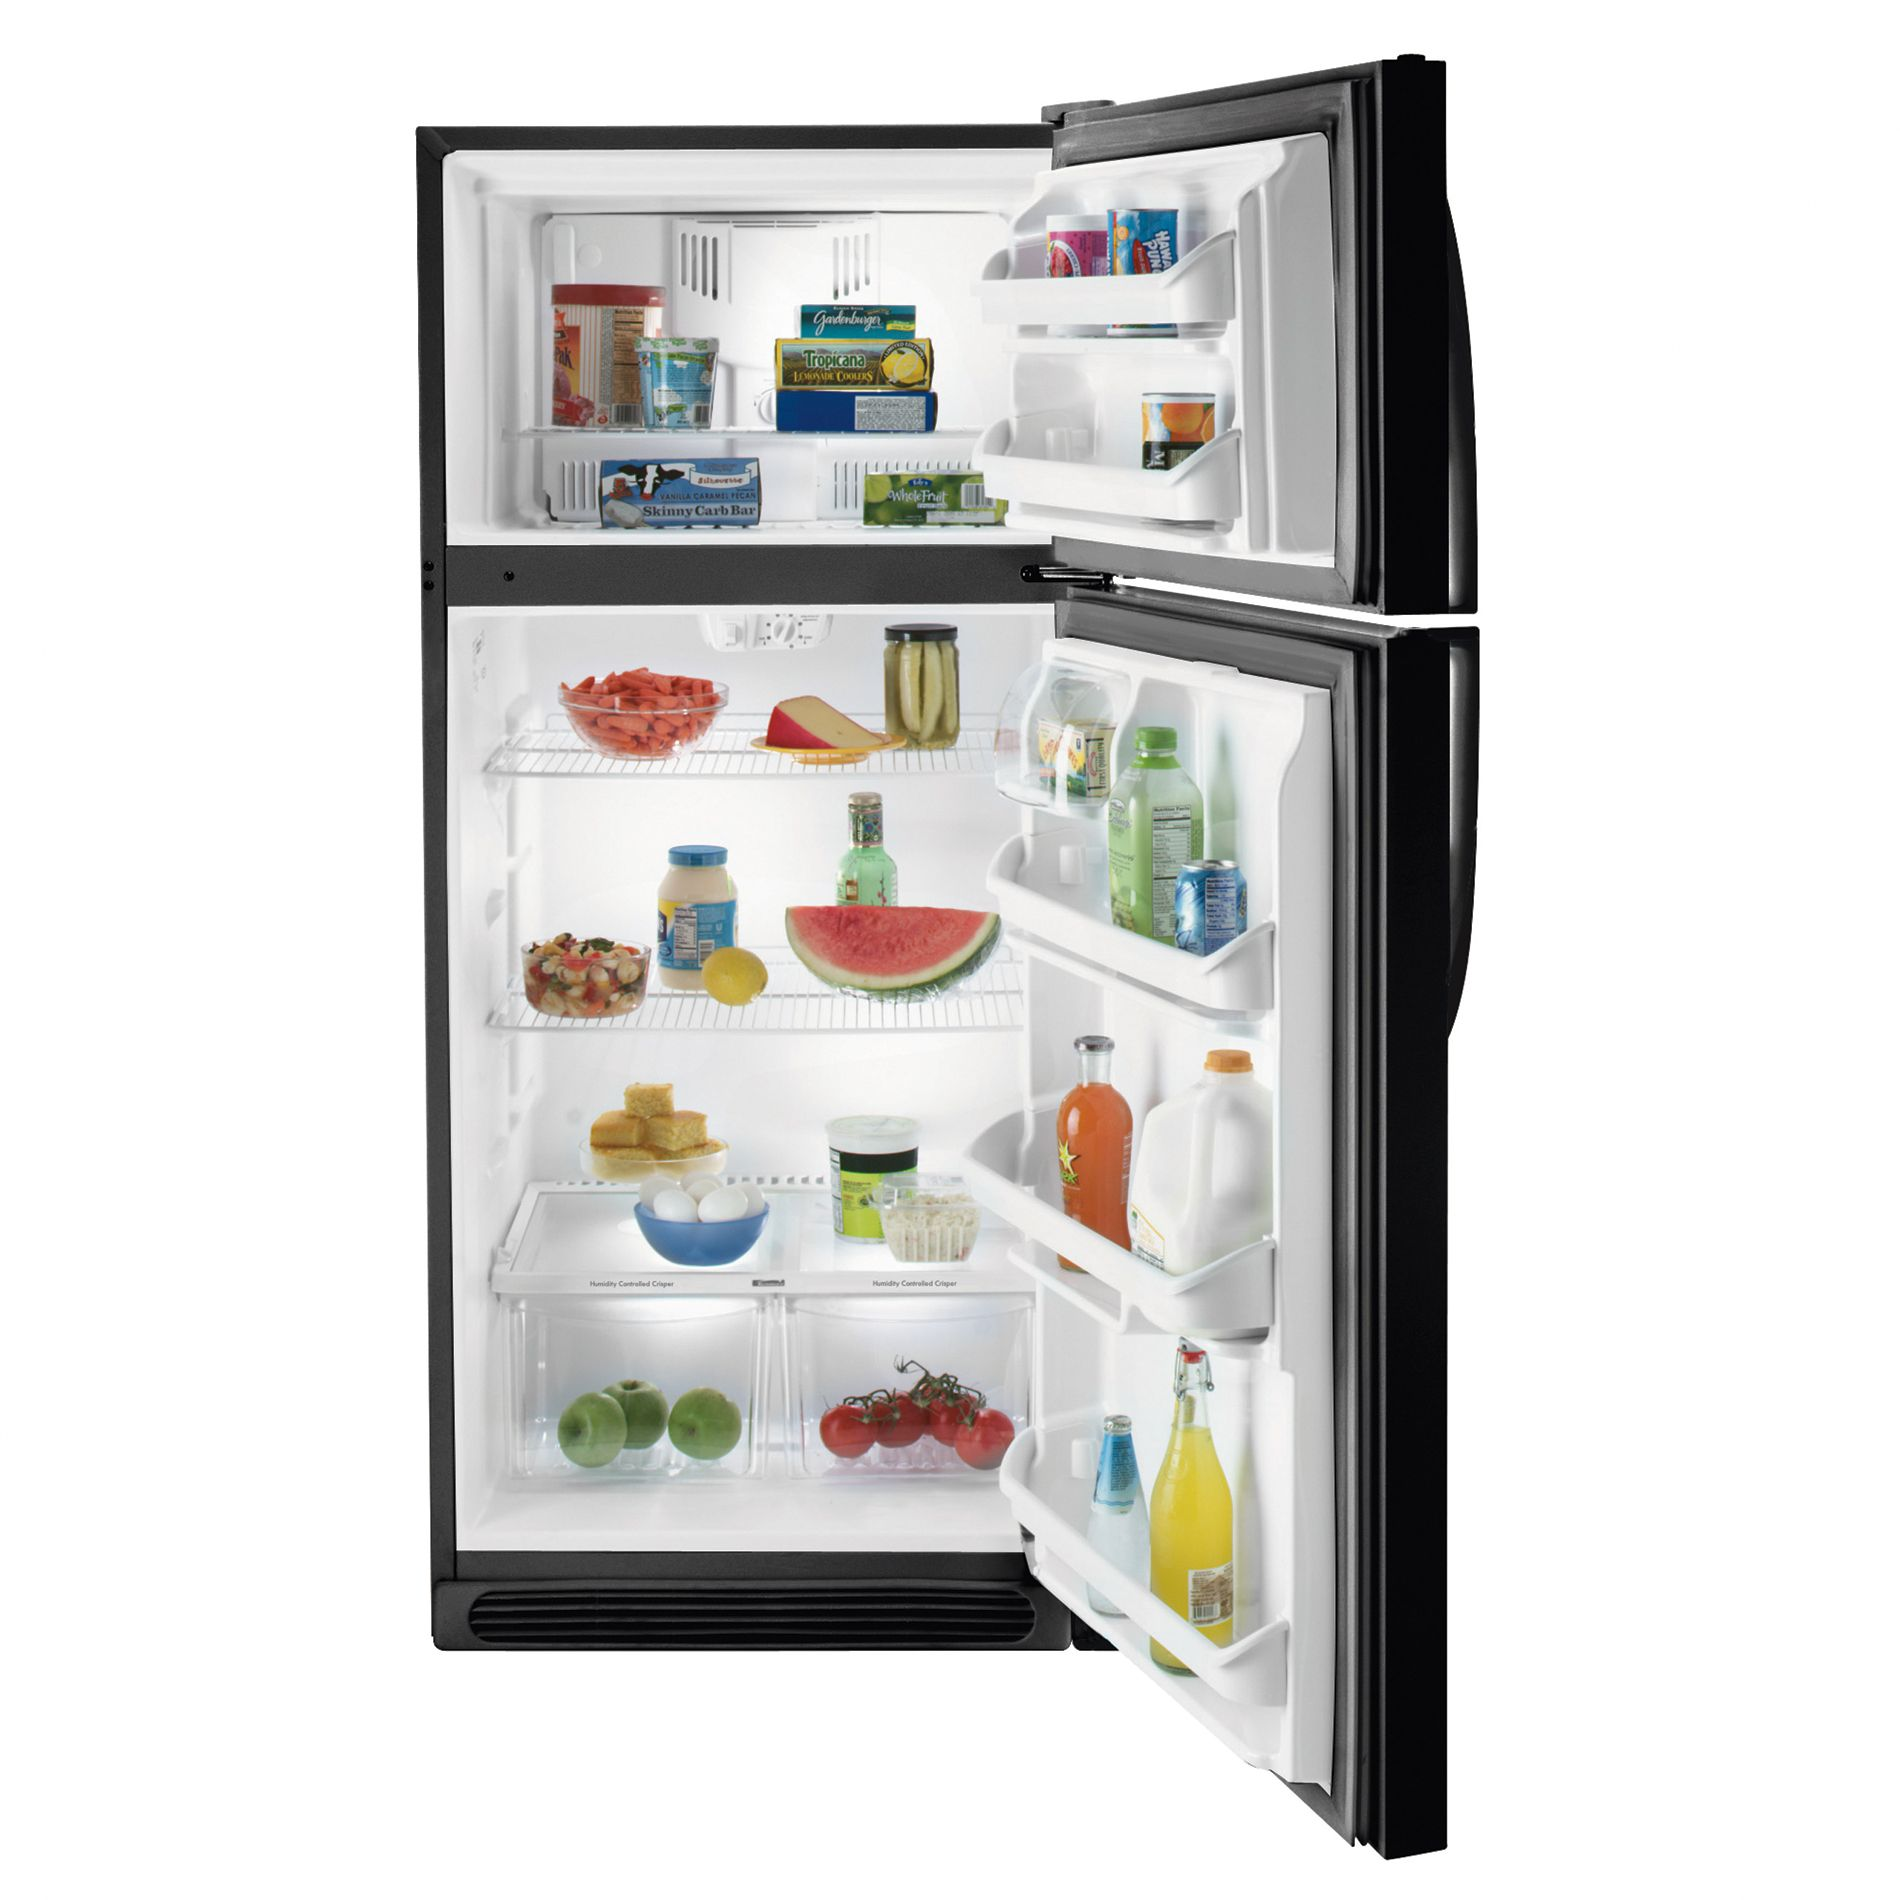 Kenmore 18.2 cu. ft. Top-Freezer Refrigerator w/ Wire Shelves - Black